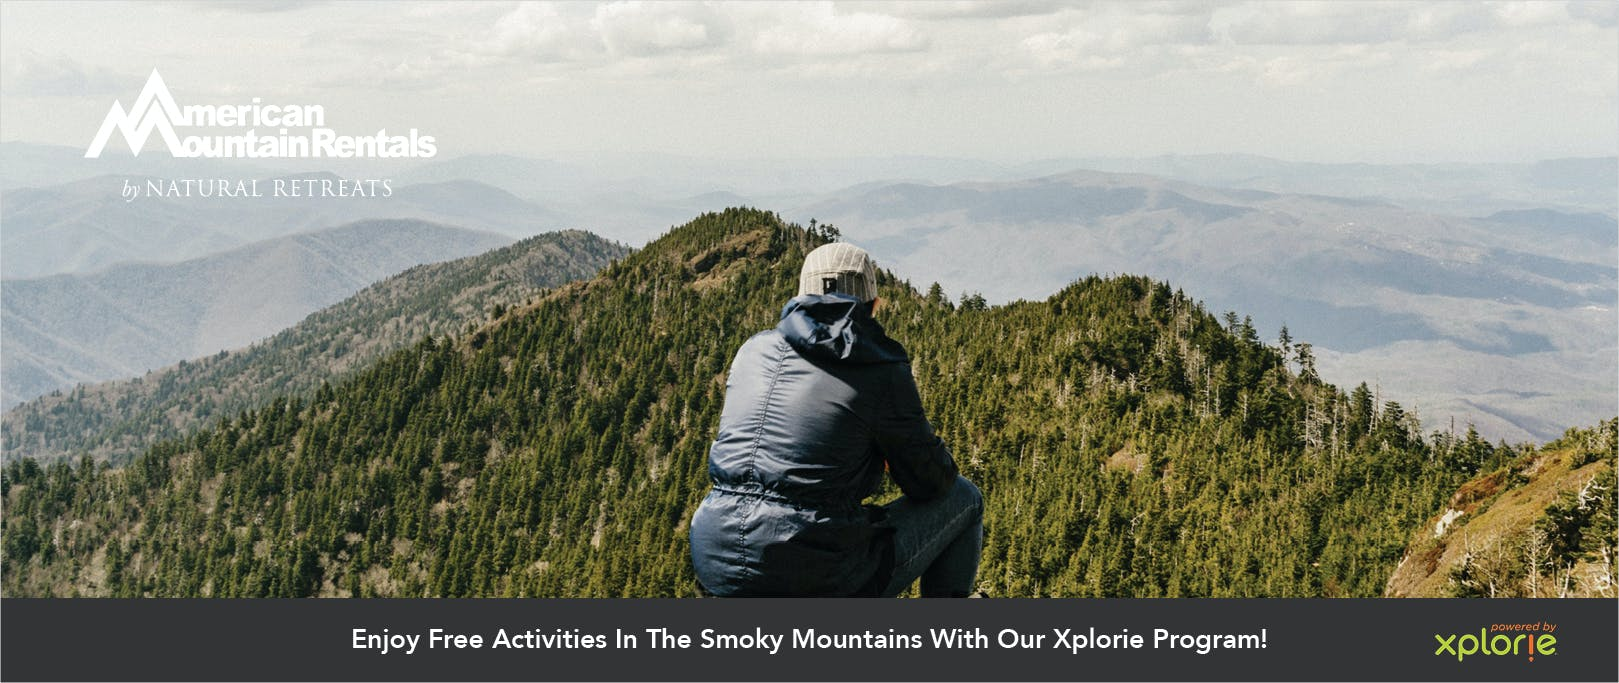 Browse Free Activities In The Smokies | American Mountain